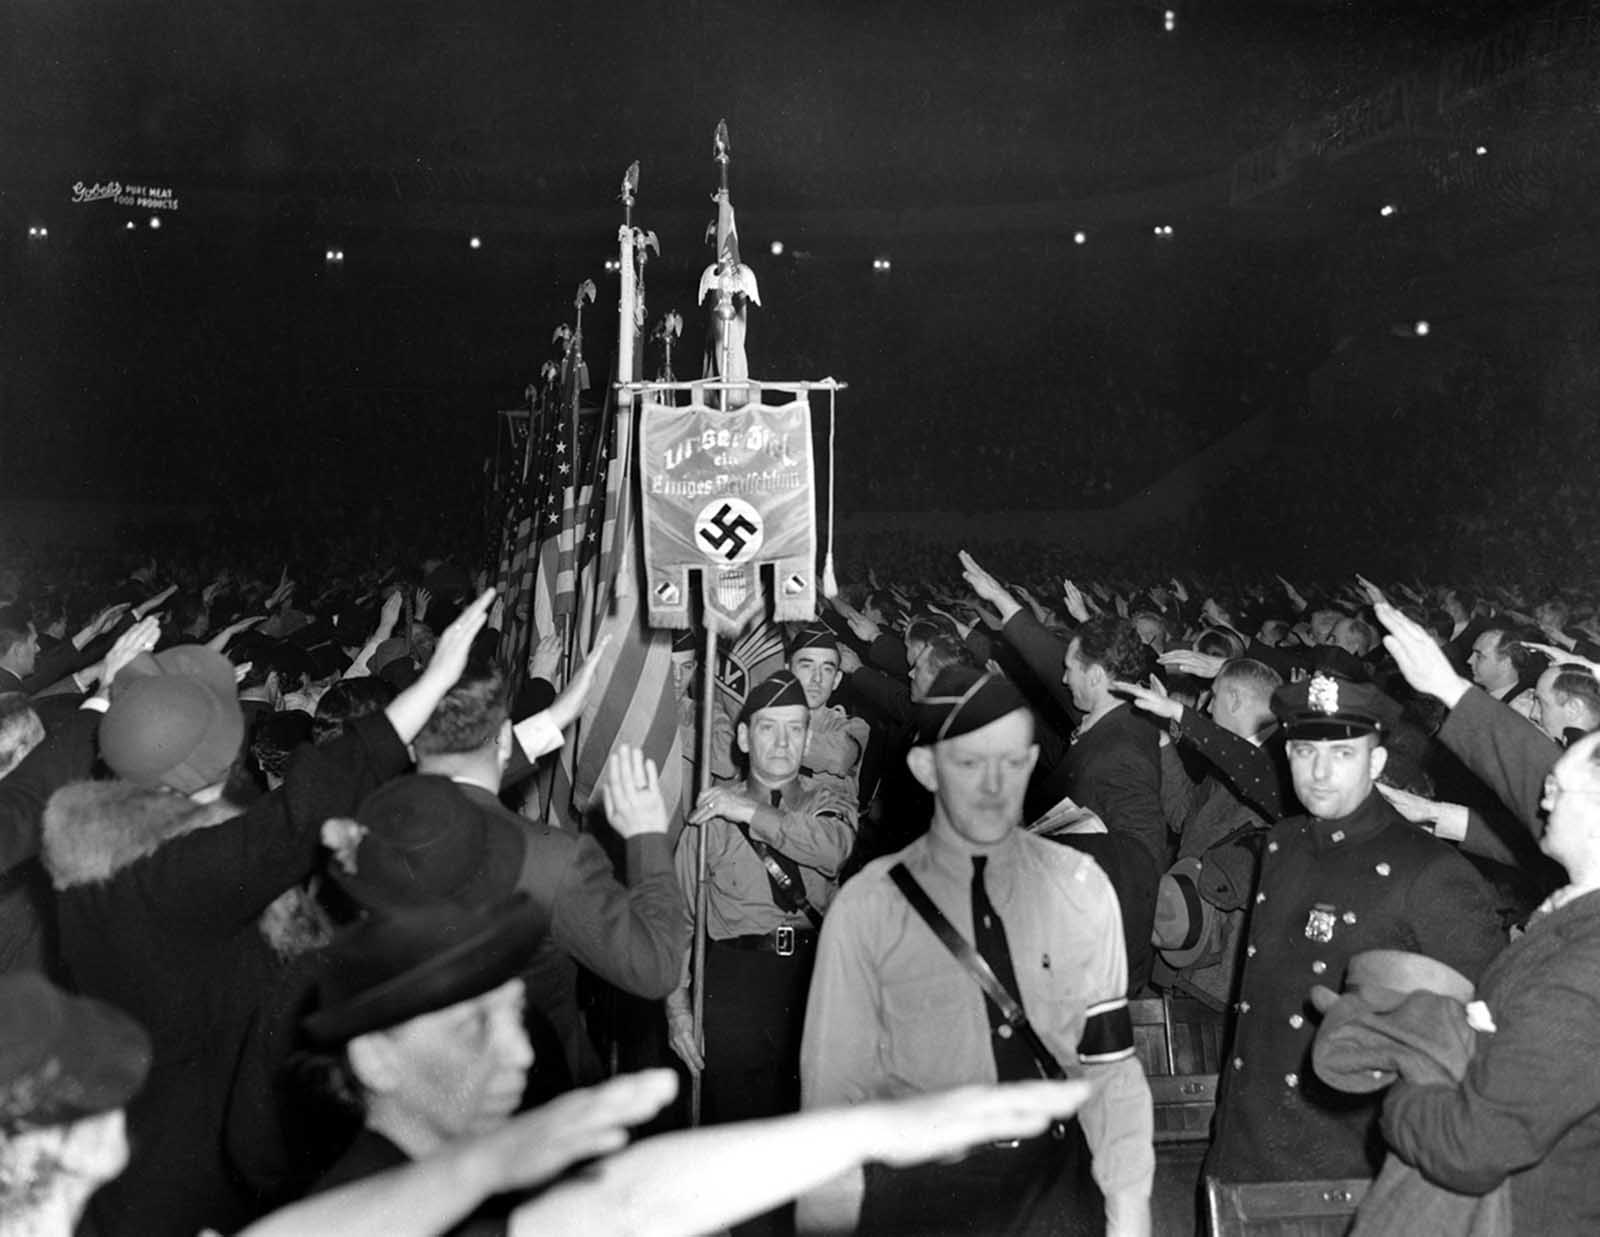 The crowd responds with a Nazi salute as uniformed members of a German-American Bund color guard march at a gathering in New York's Madison Square Garden, on February 20, 1939.